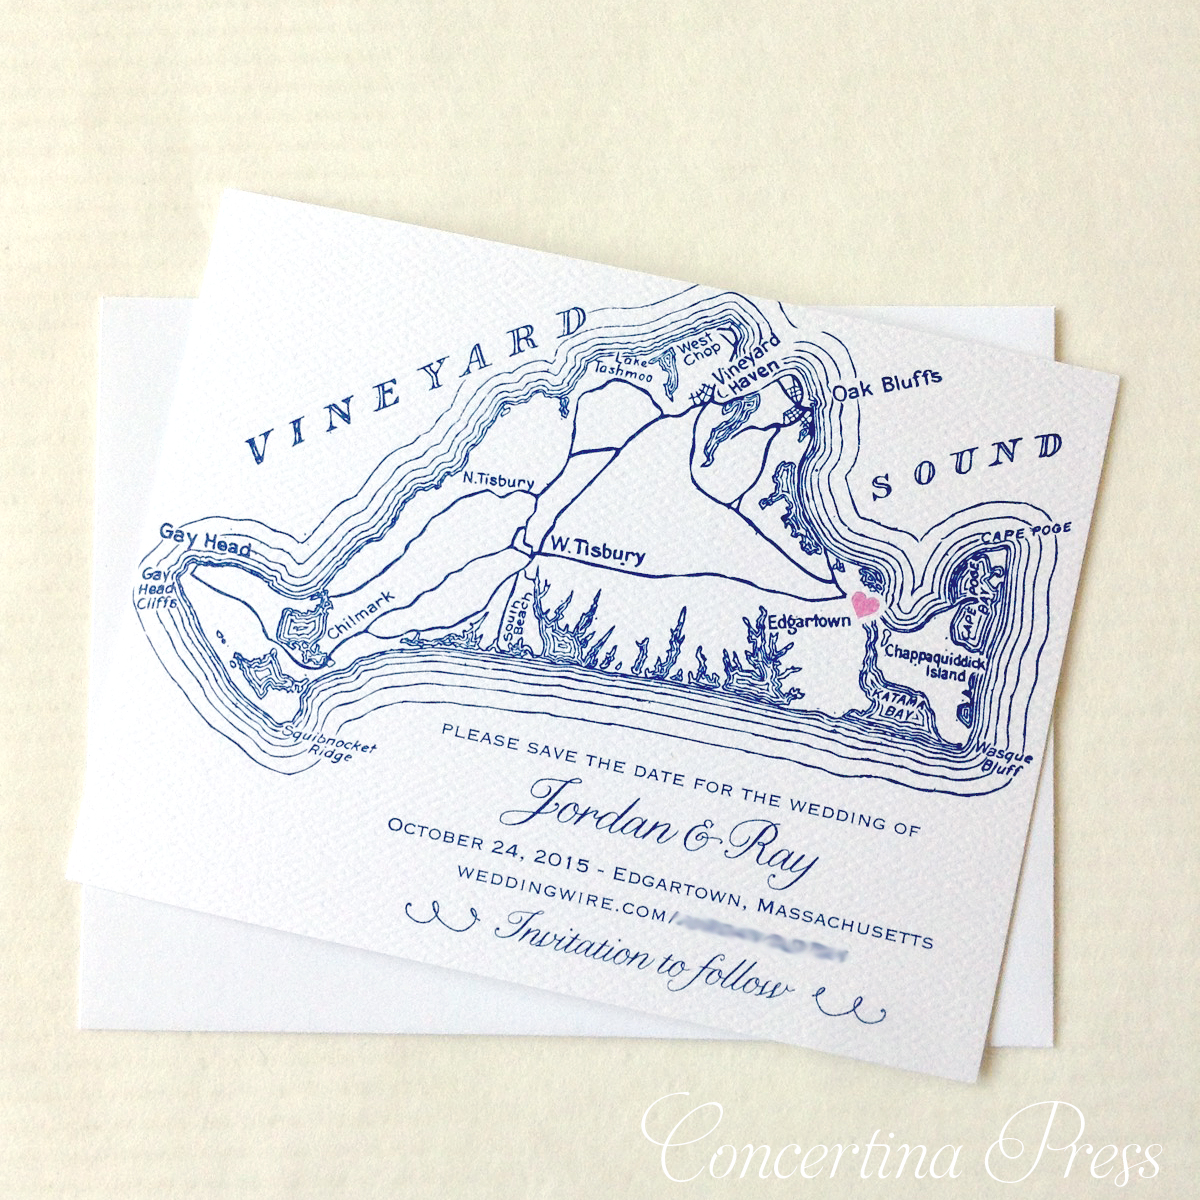 Cape Cod wedding blog photo from Concertina Press - Stationery and Invitations about Martha's Vineyard Save the Dates with Map and Tiny Heart